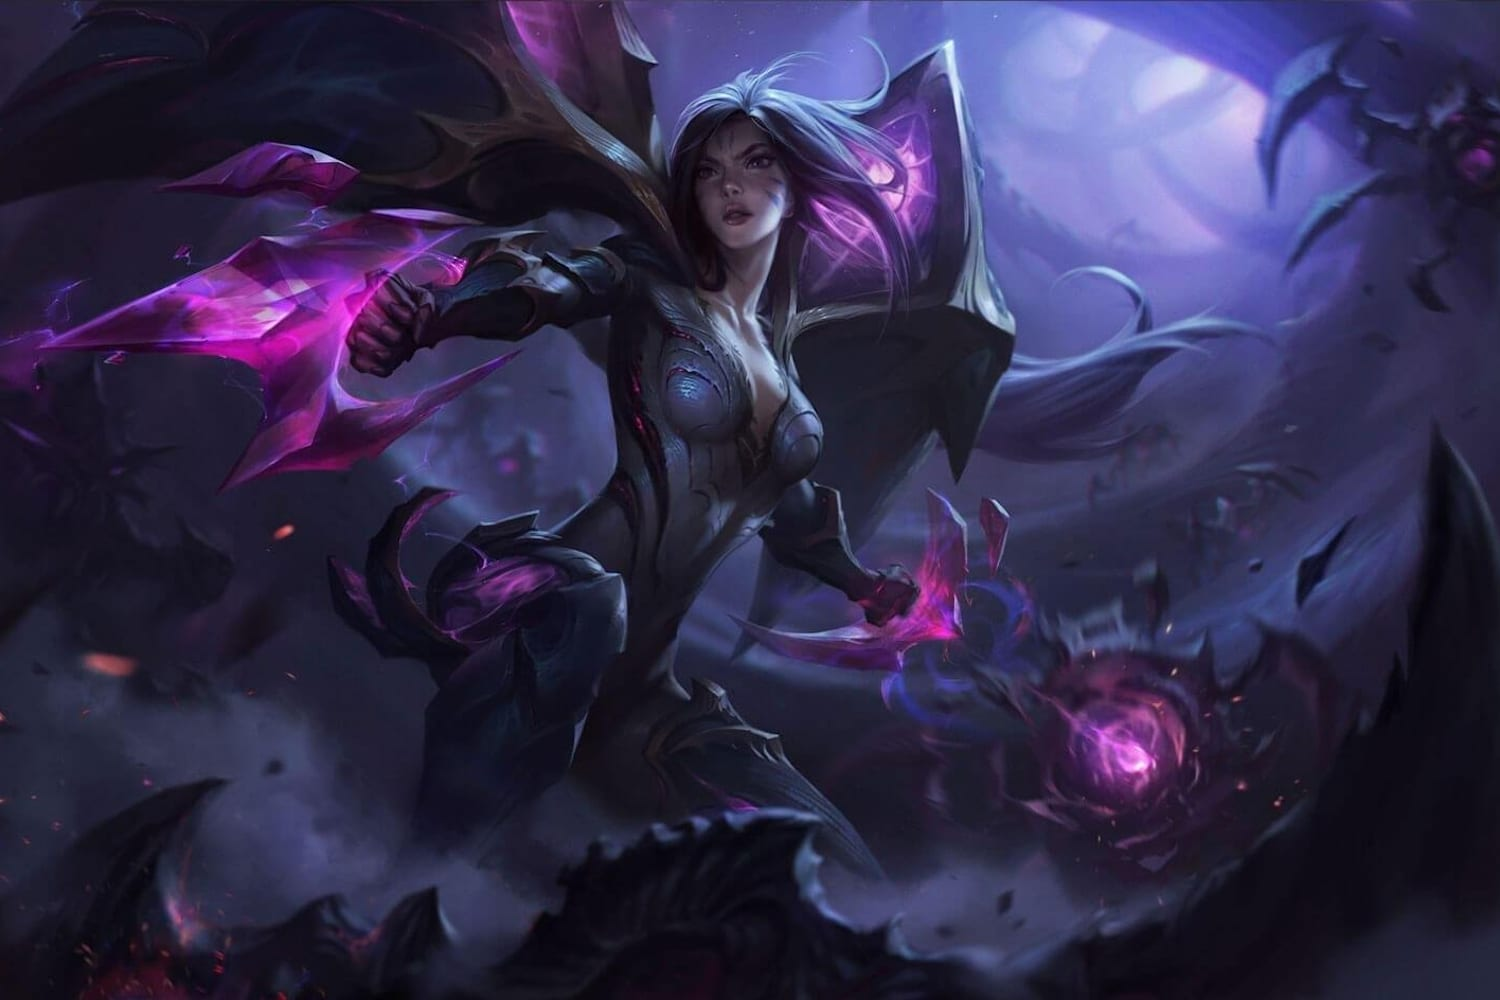 Best Lol Solo Queue Champions To Rise Through The Ranks